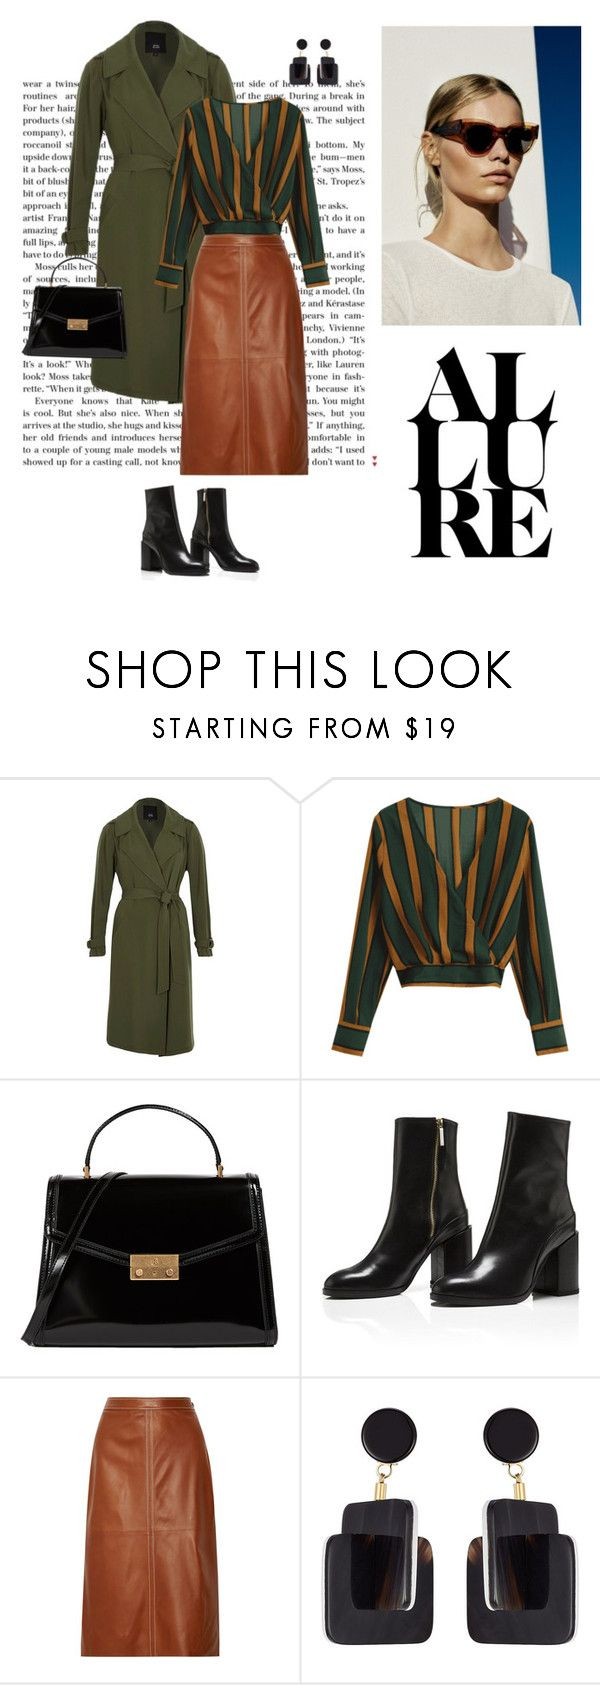 """""""30/09"""" by dorey on Polyvore featuring River Island, Tory Burch, Vanessa Seward and Marni"""